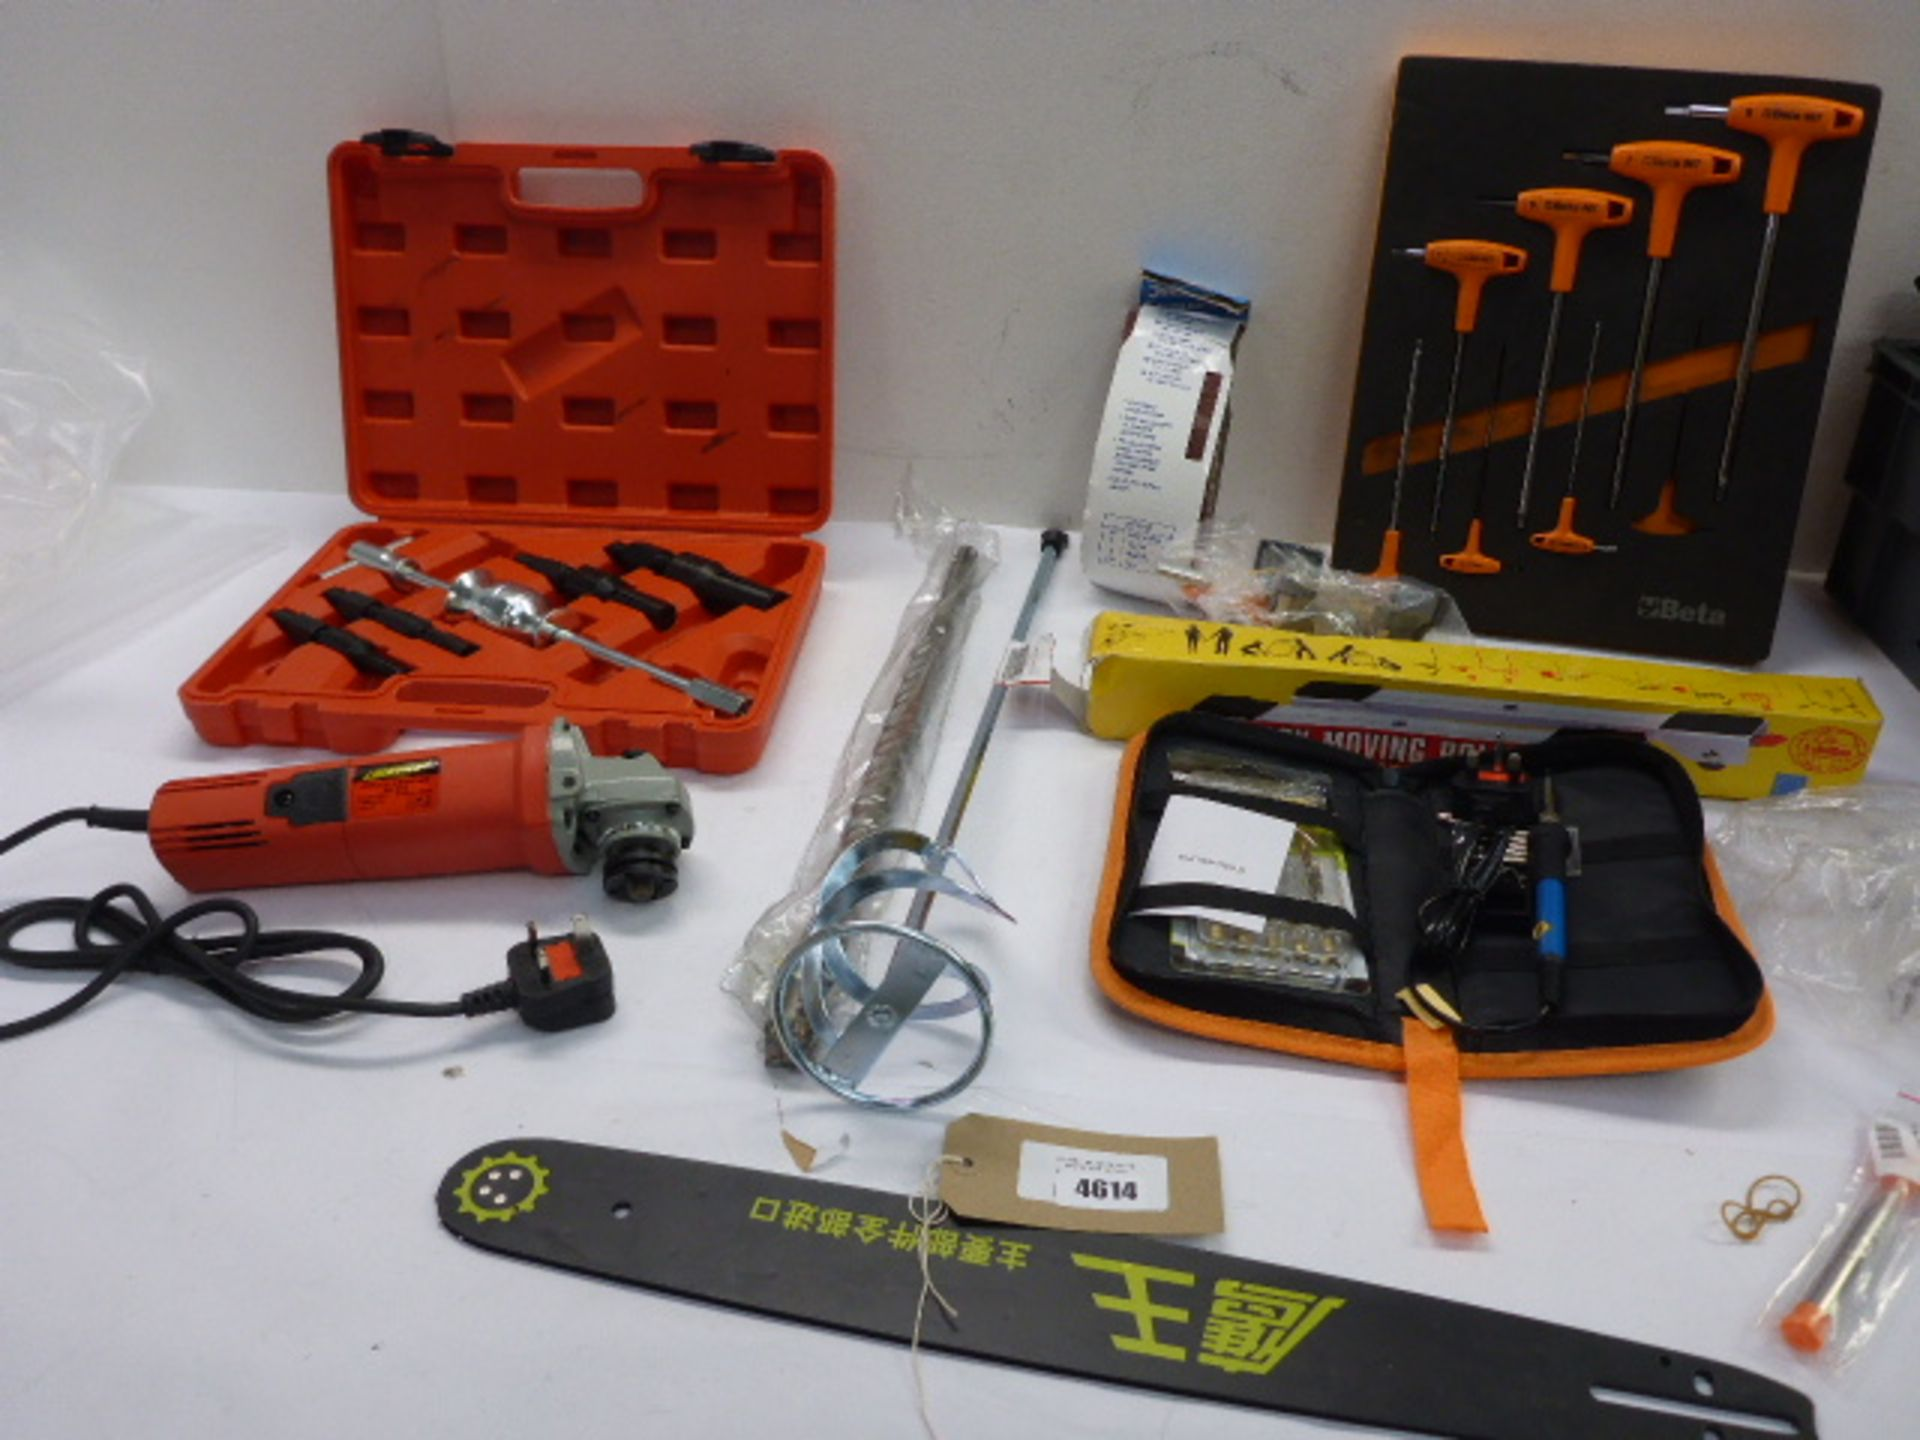 Lot 4614 - Beta Hex key set, angle grinder, plaster paddle, drill bit, soldering iron, moving easy wheels,